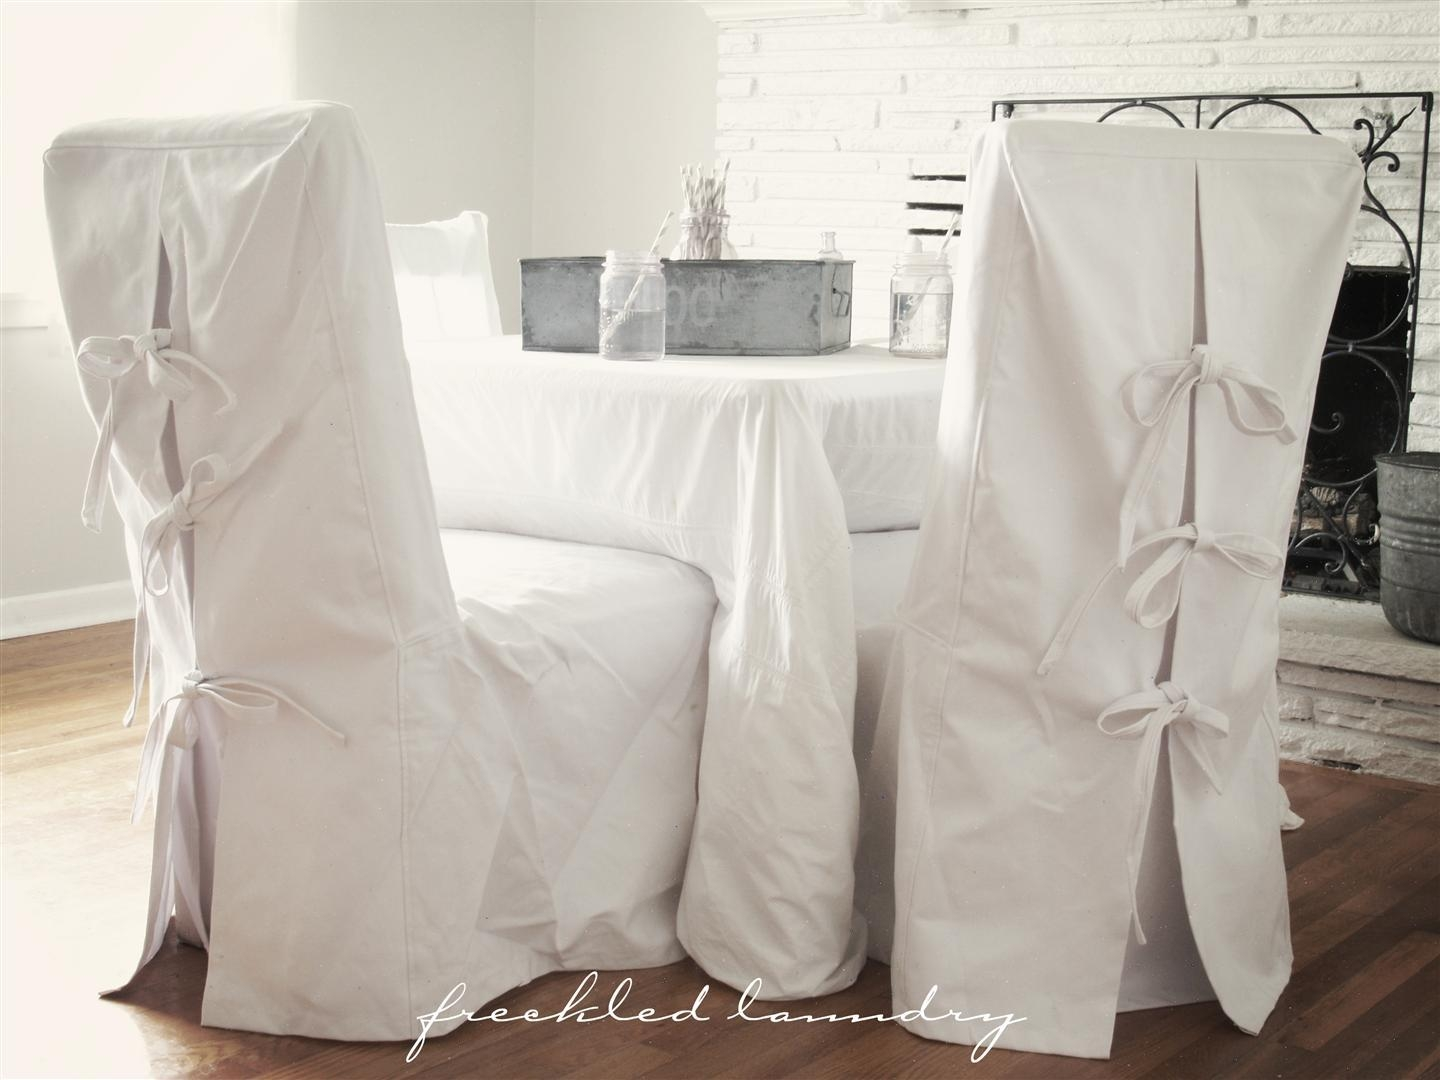 Chair Slip Cover Pattern Design Patterns With Top Slip Covers With Regard To Pottery Barn Chair Slipcovers (Image 1 of 20)